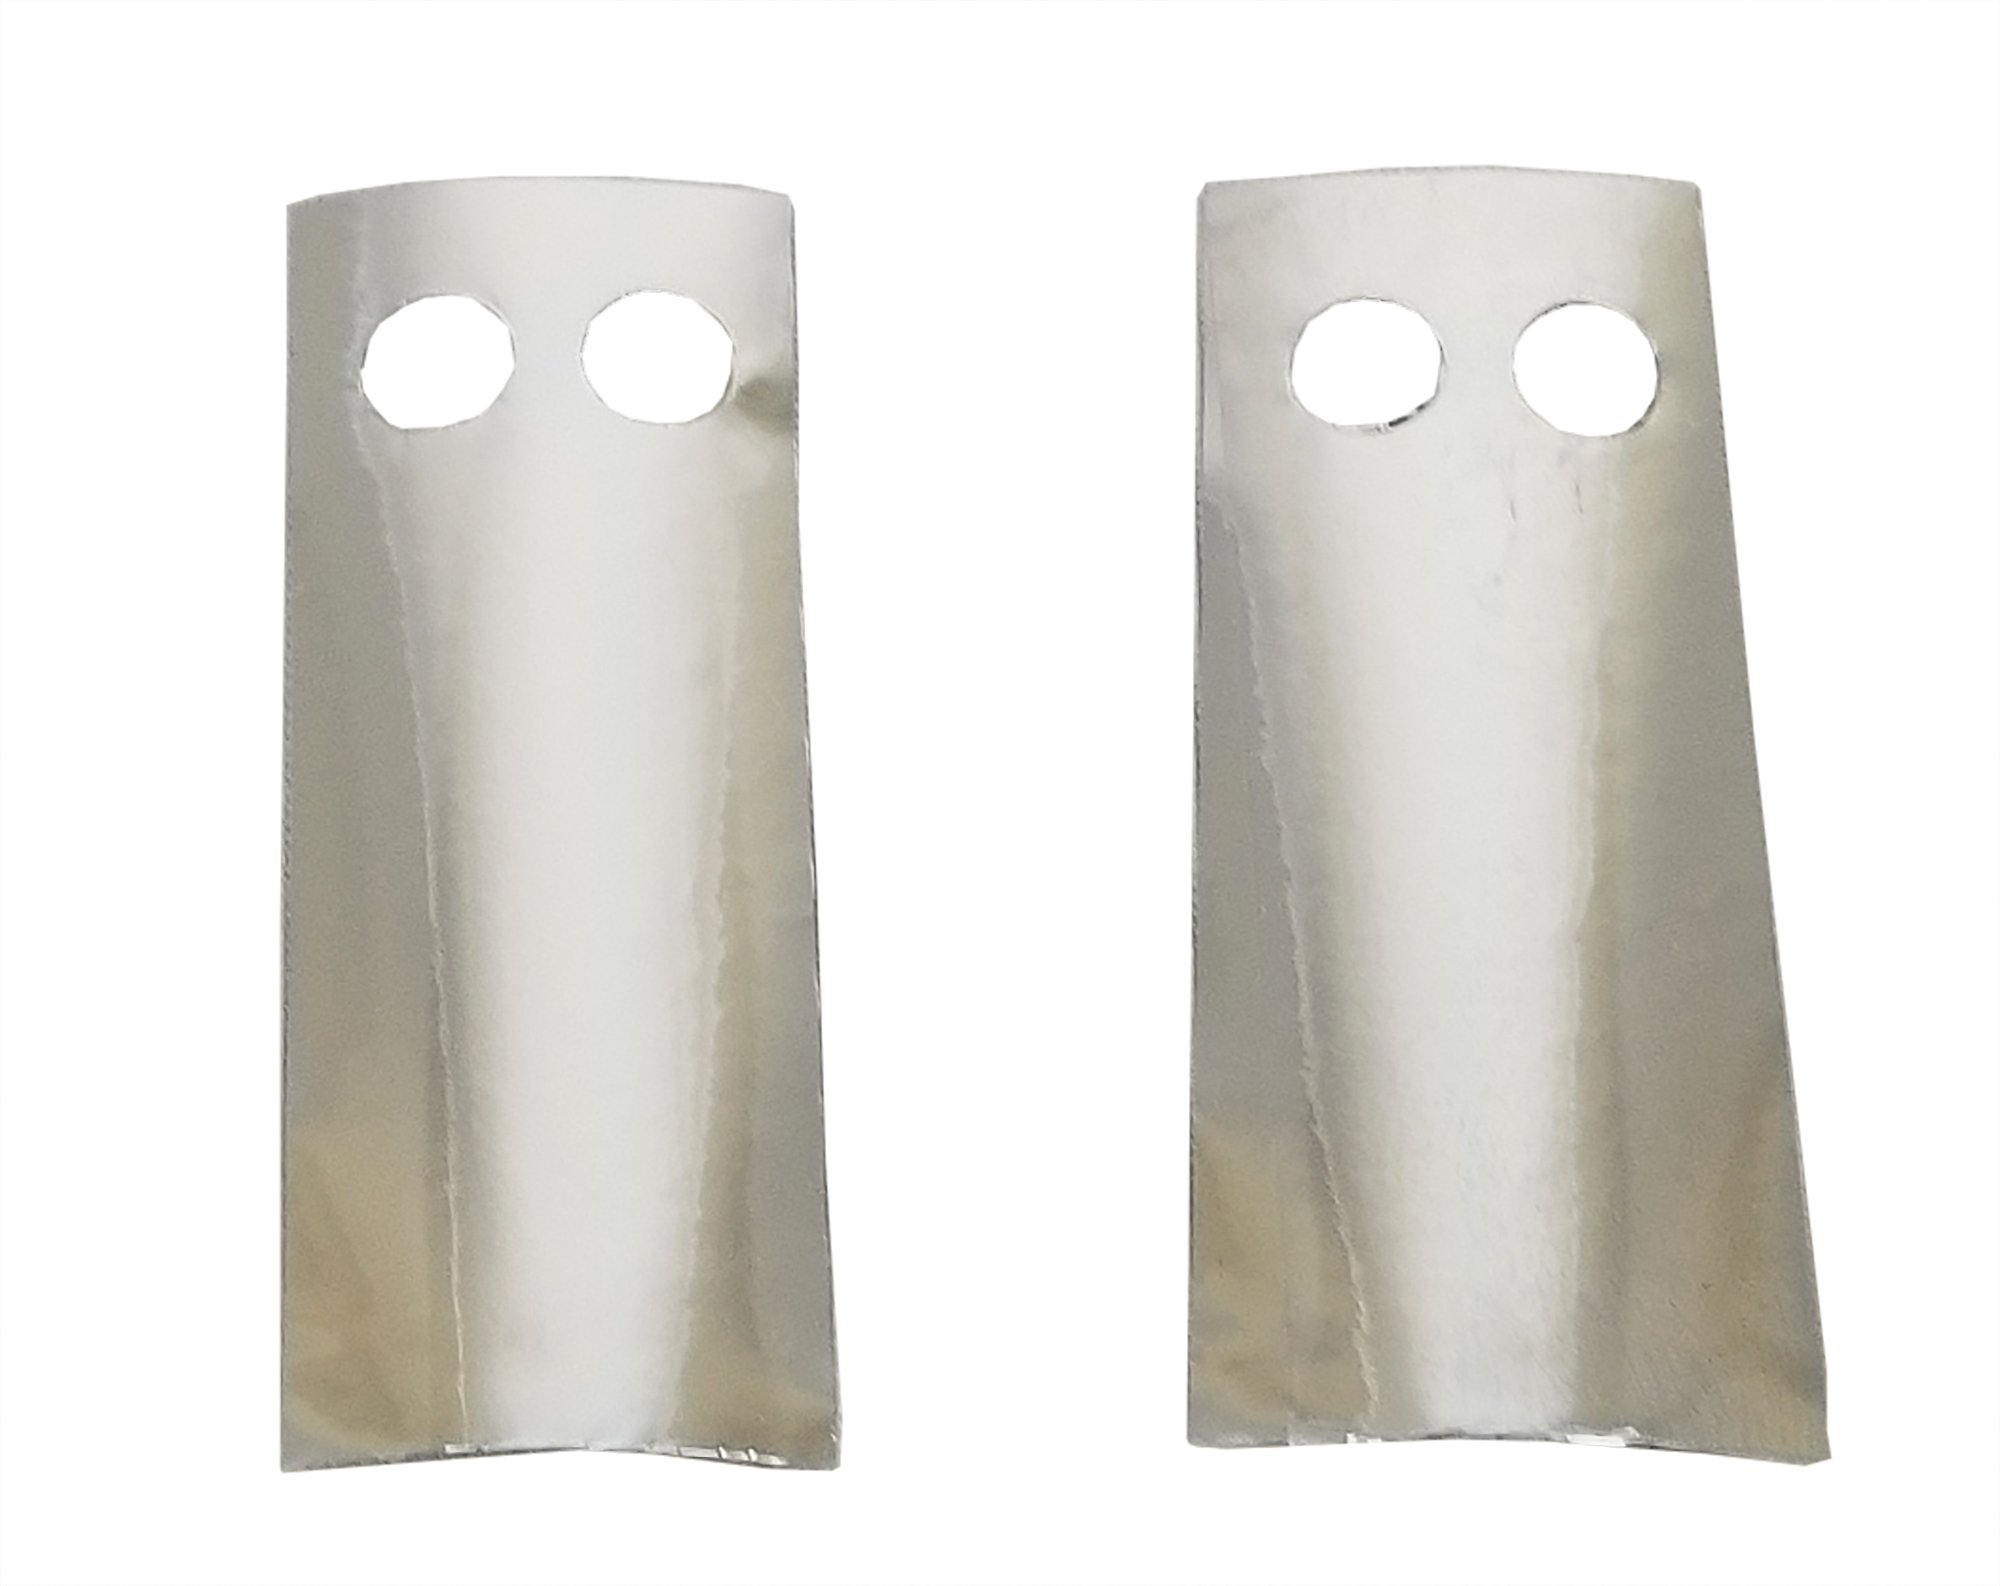 GSC International 4-50140-FOIL Electroscope Foil with Two Holes Punched in Top (Pair) by GSC International Inc.